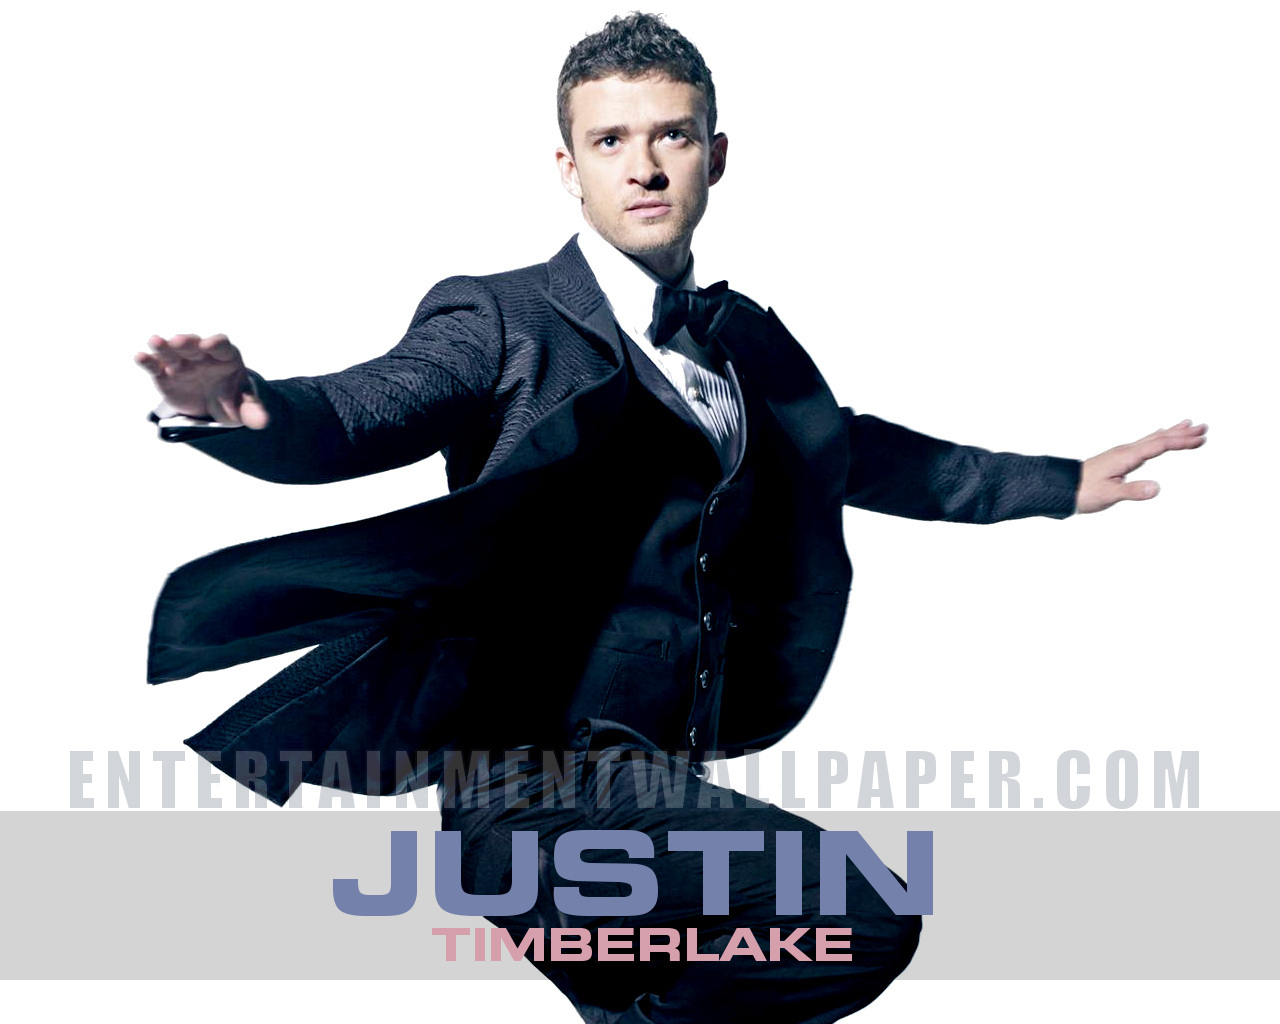 Justin Timberlake Wallpaper 40199